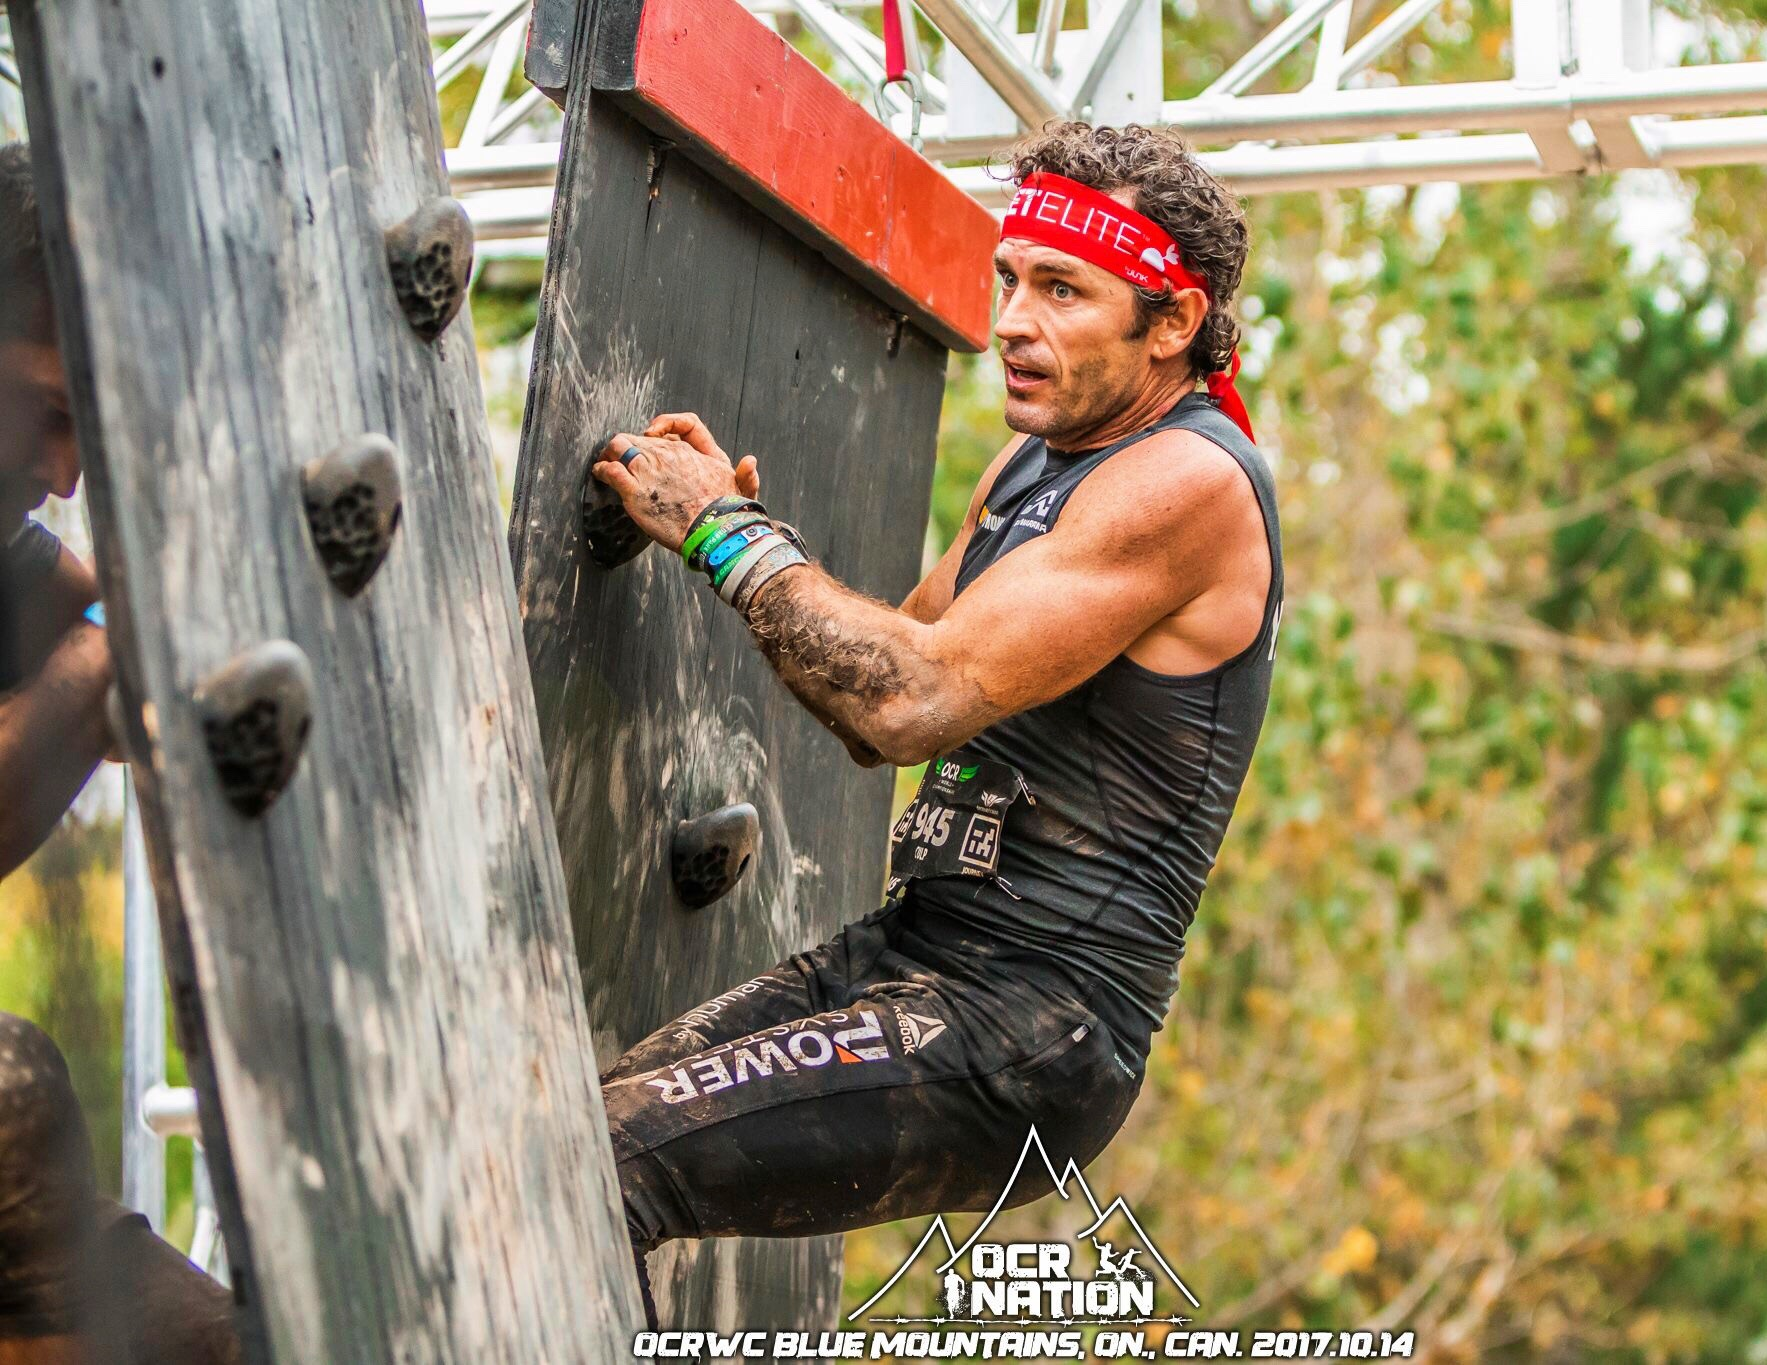 Dominate the Day and Obstacle Races with Yancy Culp